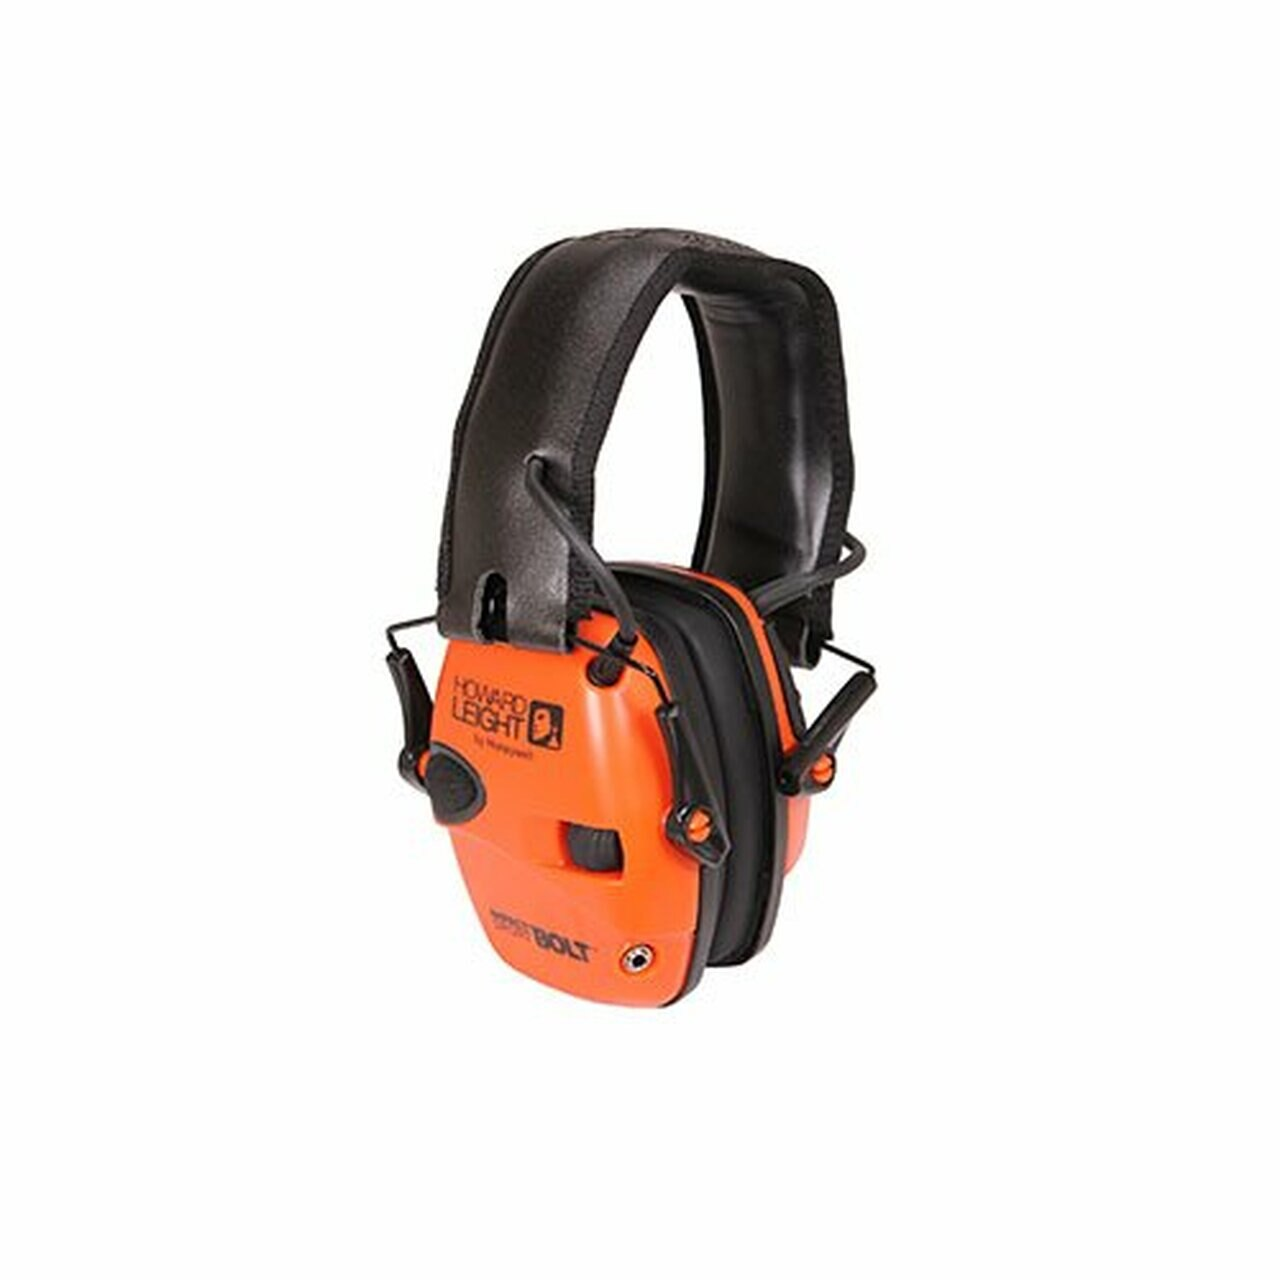 HOWARD LEIGHT IMPACT SPORT BOLT DIGITAL ELECTRONIC SHOOTING EARMUFF – R-02231